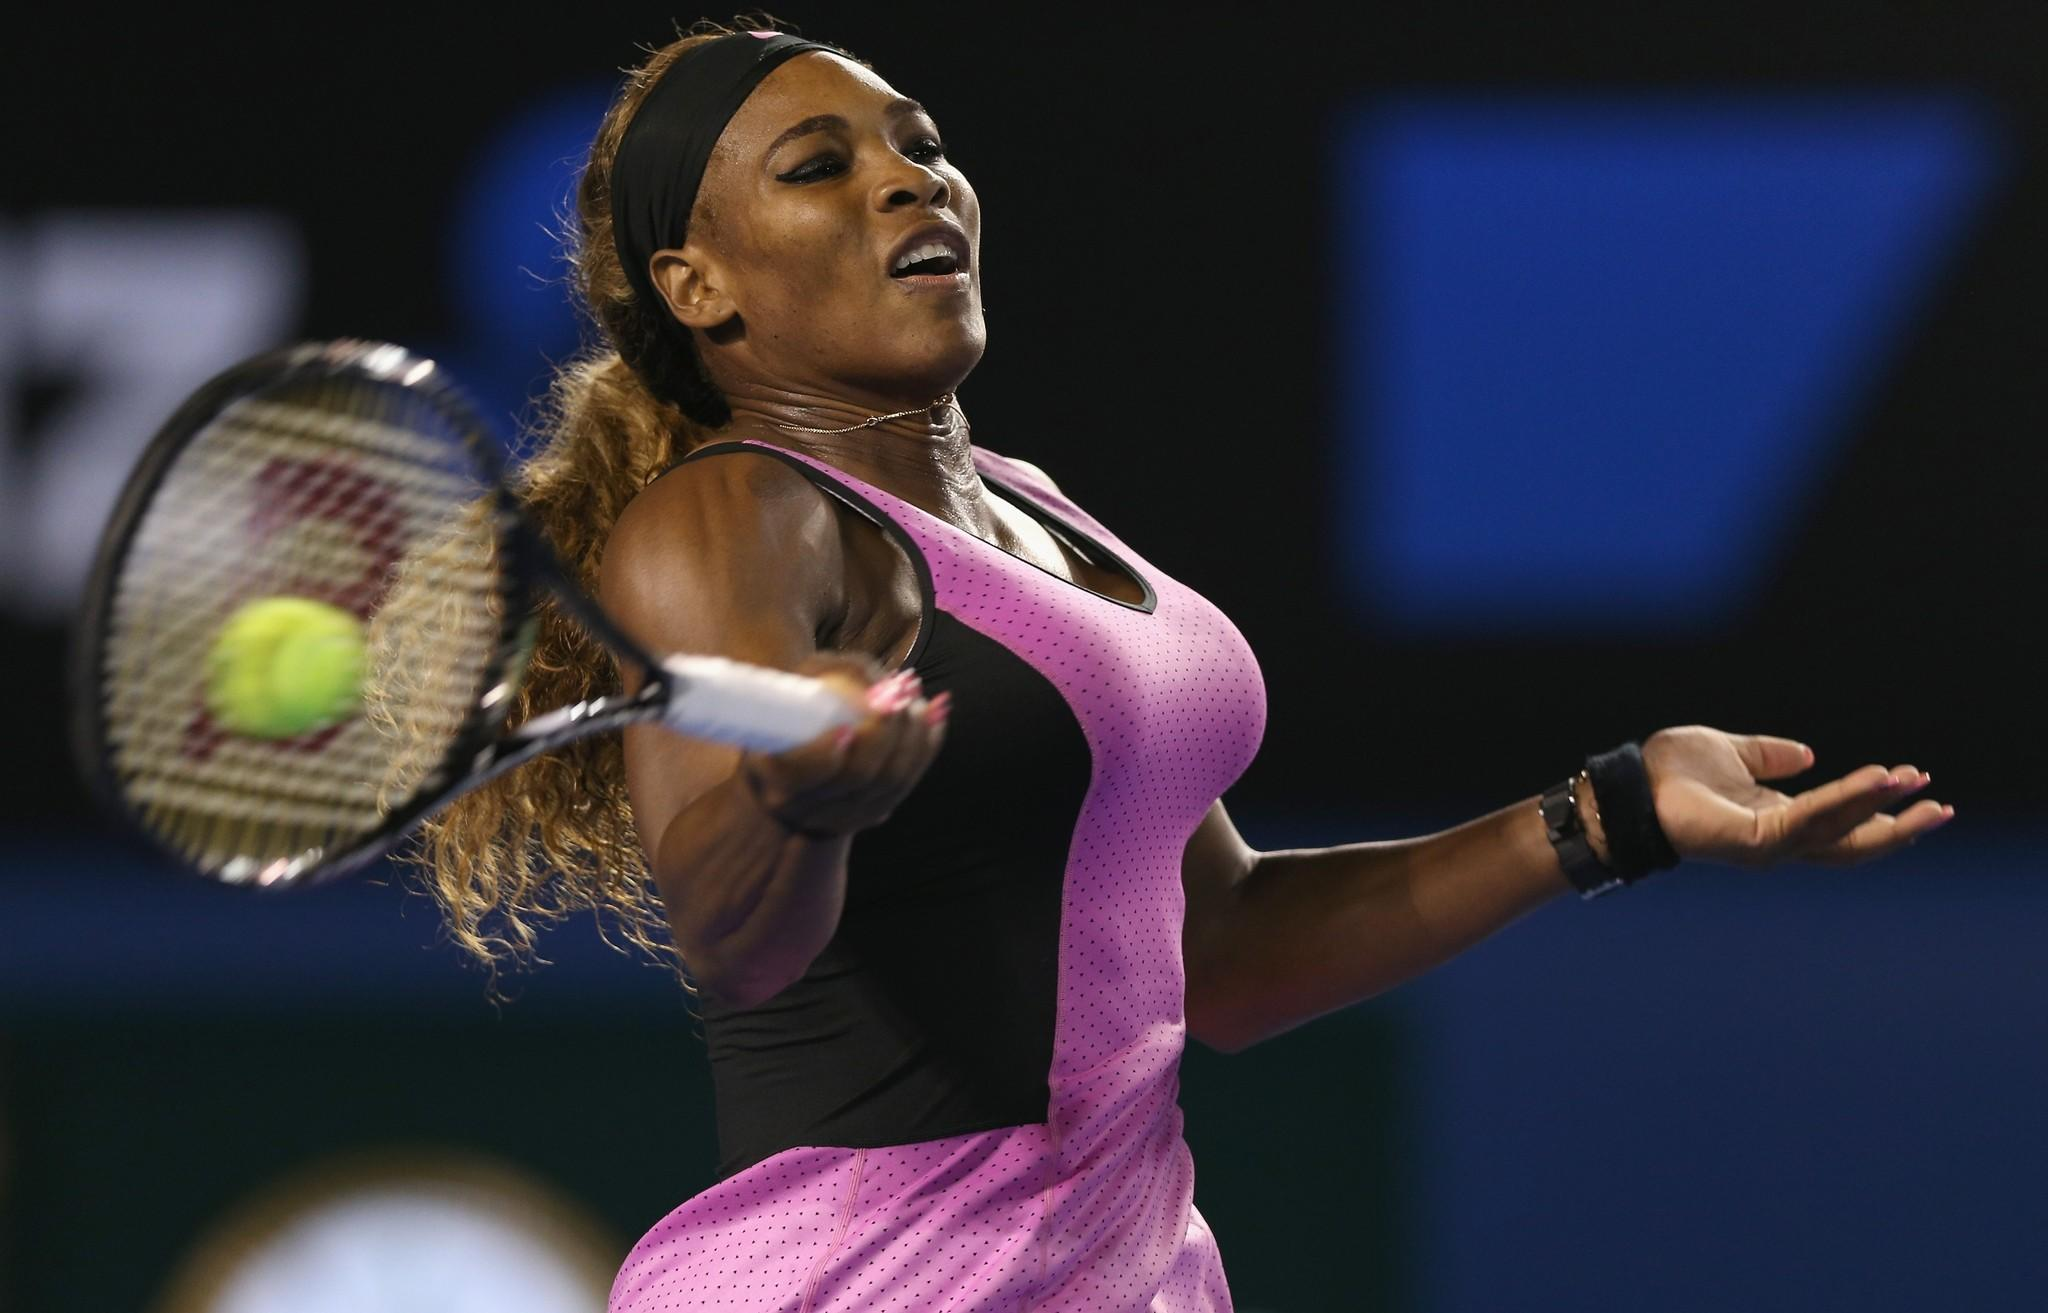 Serena Williams plays a forehand in her first round match against Ashleigh Barty of Australia.